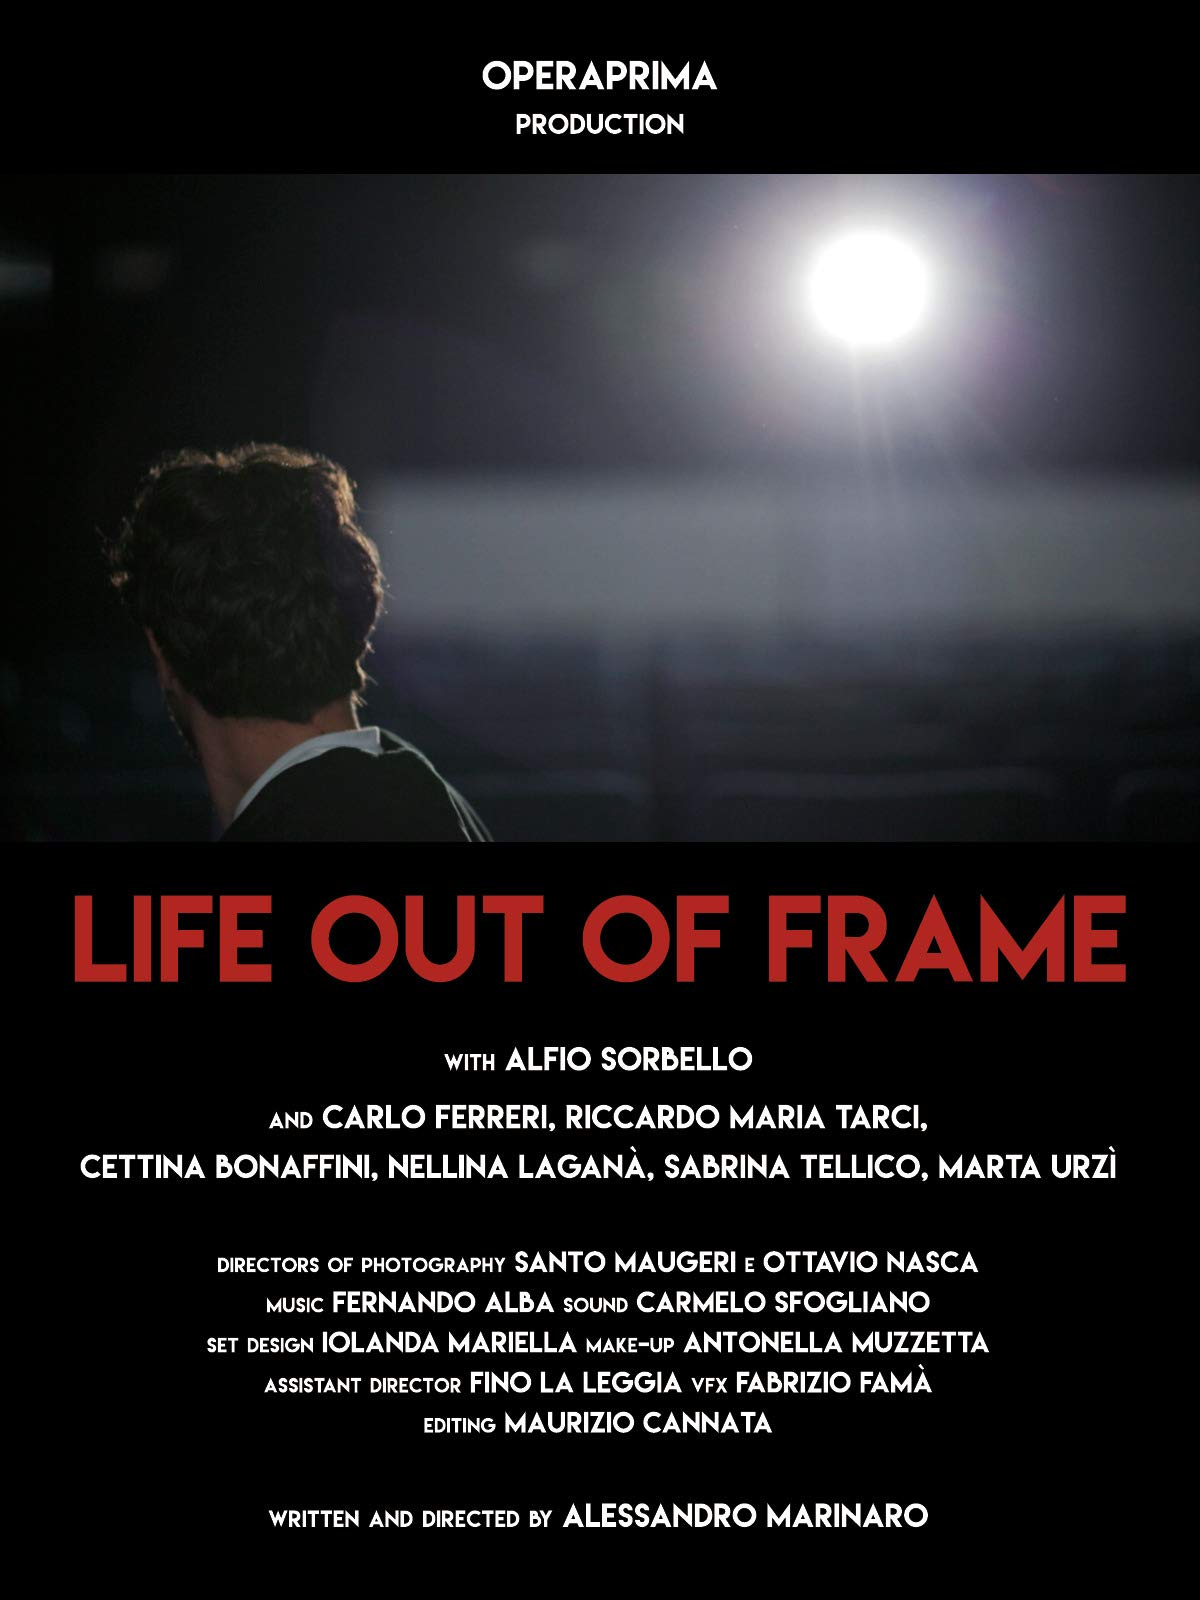 Life out of frame